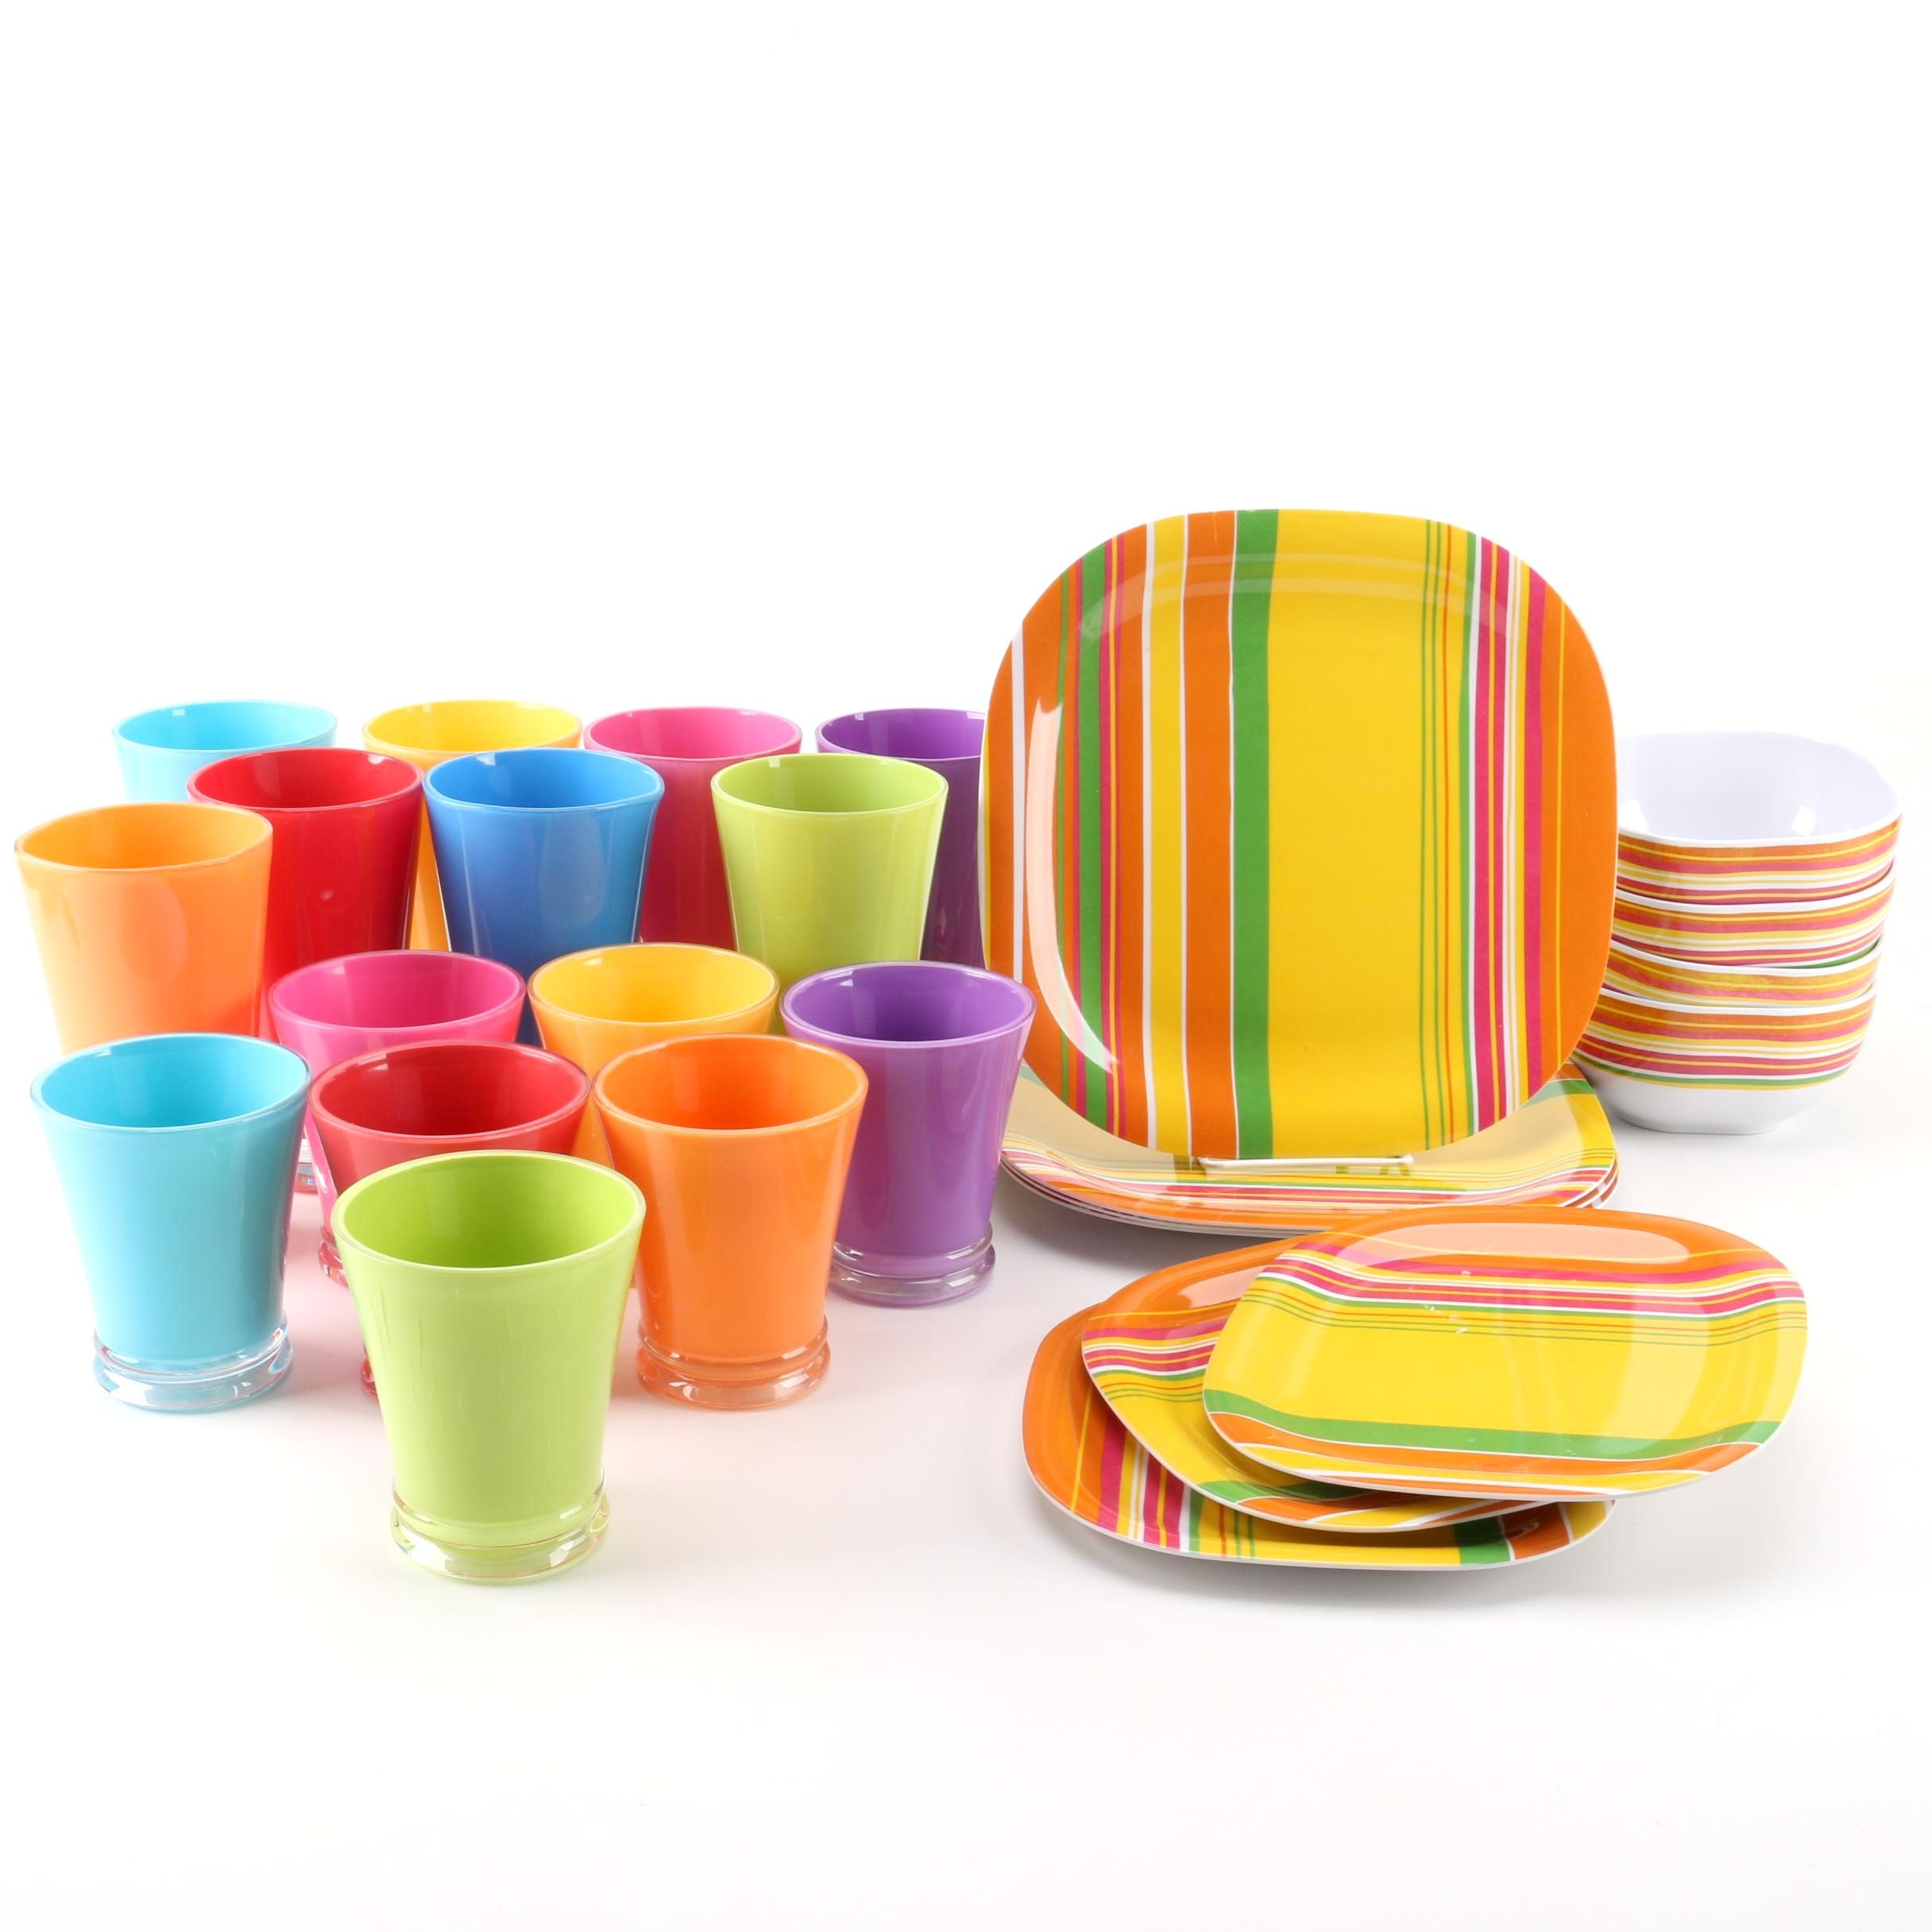 Precidio Tableware and Colorful Tumblers ...  sc 1 st  EBTH.com : precidio dinnerware - pezcame.com